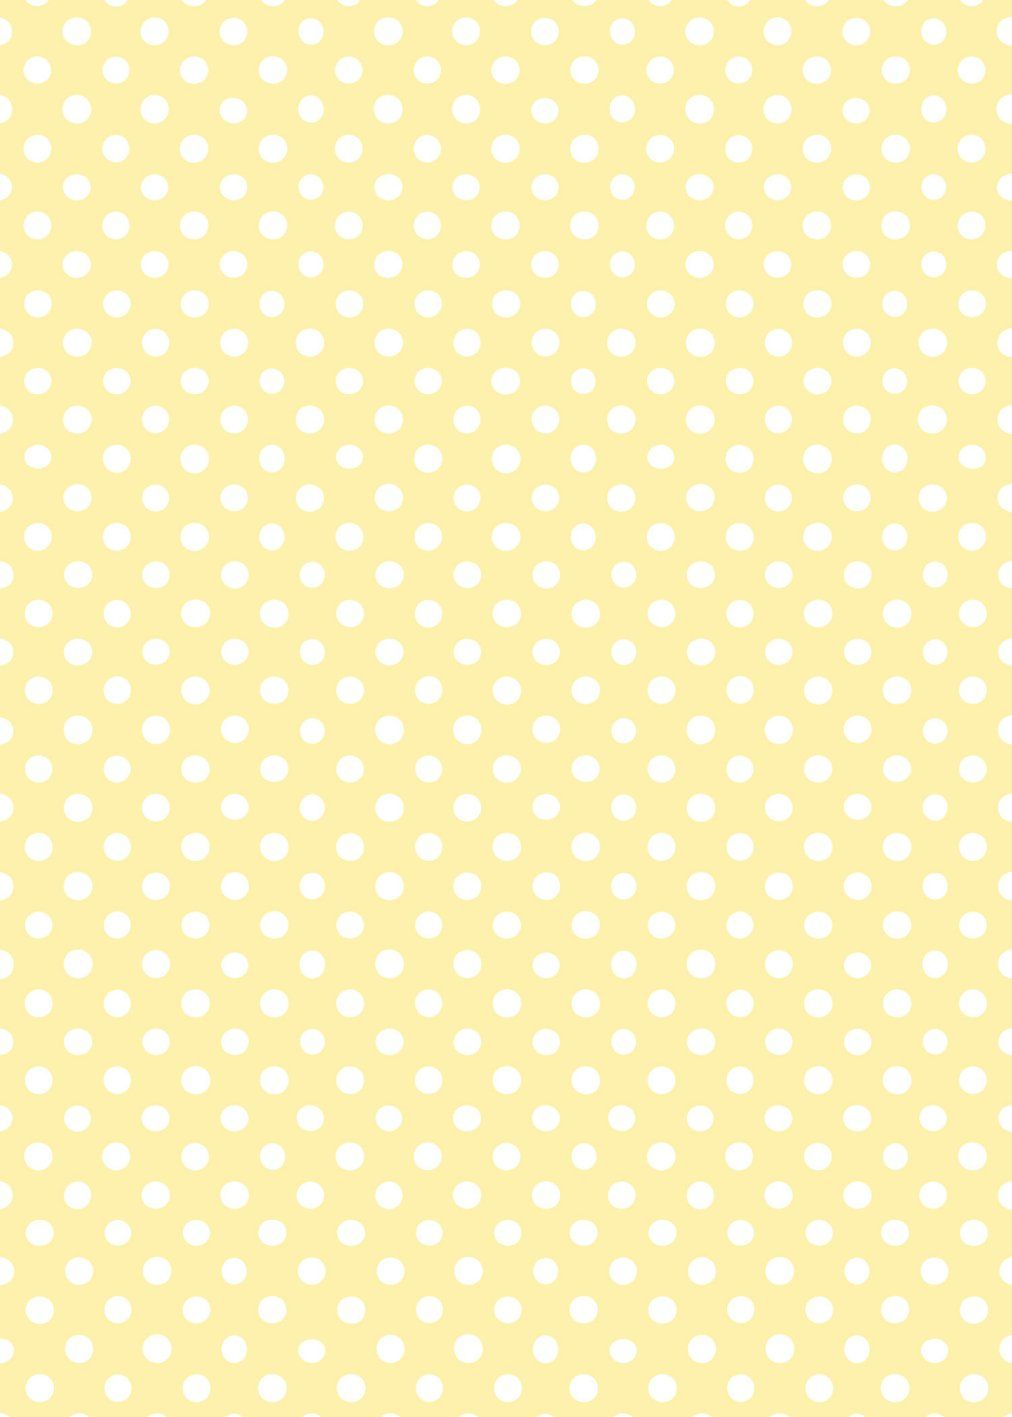 morandi sisters microworld printable wallpapers polka dots rh pinterest com